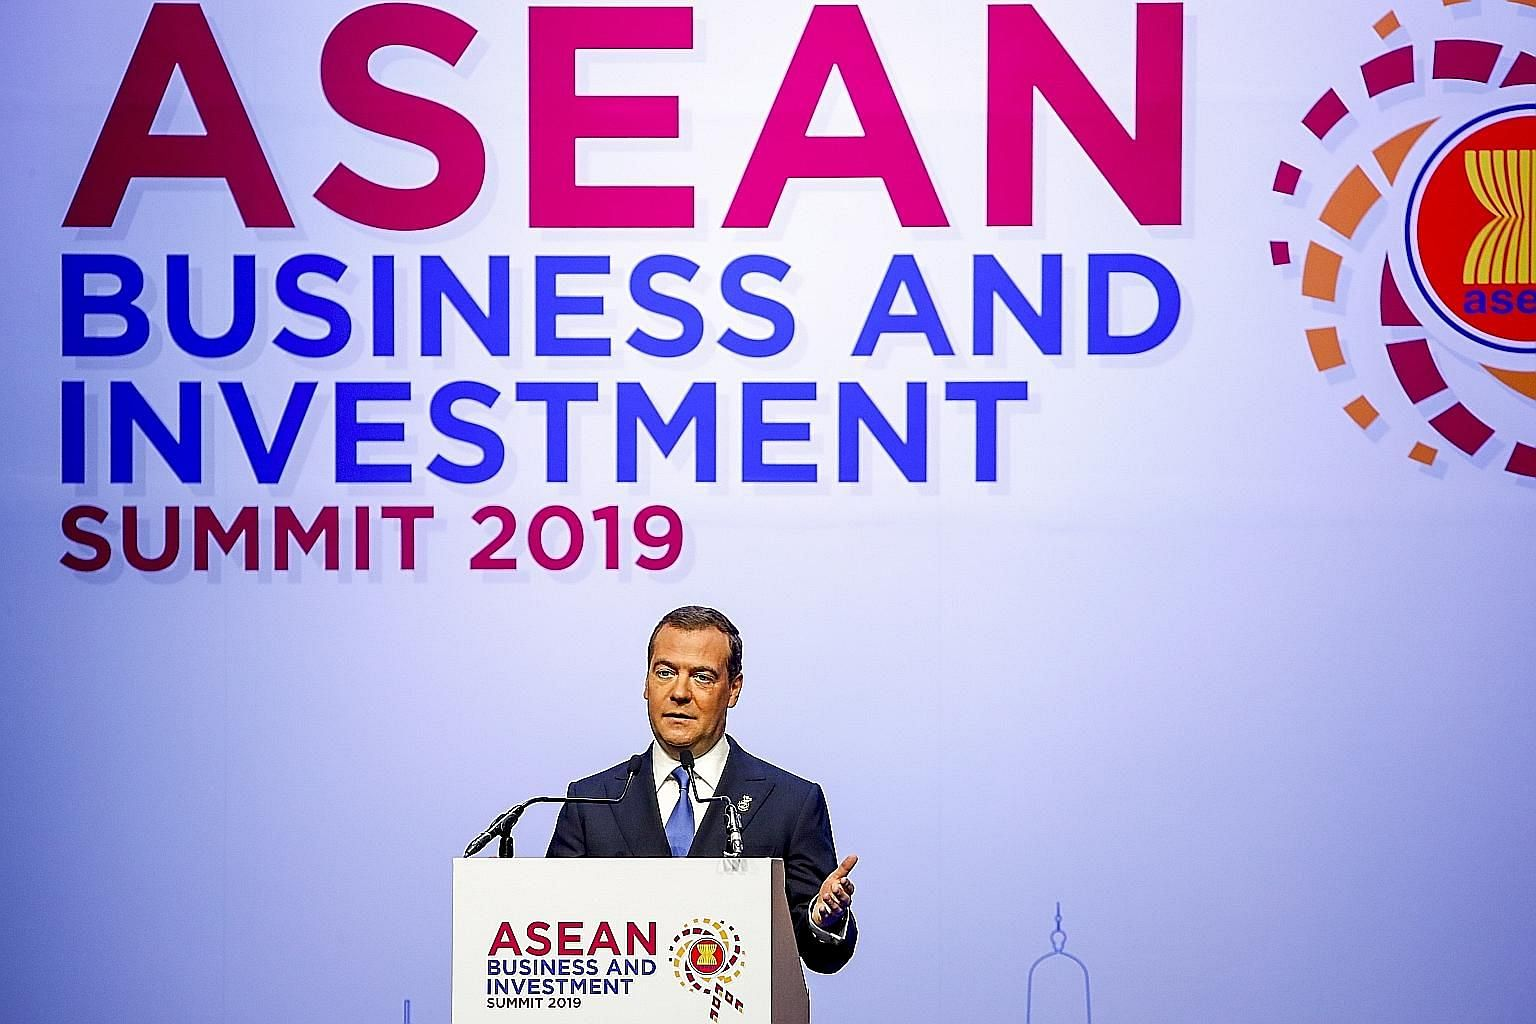 Russian Prime Minister Dmitry Medvedev said the Eurasian Economic Union is in talks with partners in Asean about possible free trade deals. PHOTO: EPA-EFE Above: US Commerce Secretary Wilbur Ross and Thai Prime Minister Prayut Chan-o-cha at a bilater